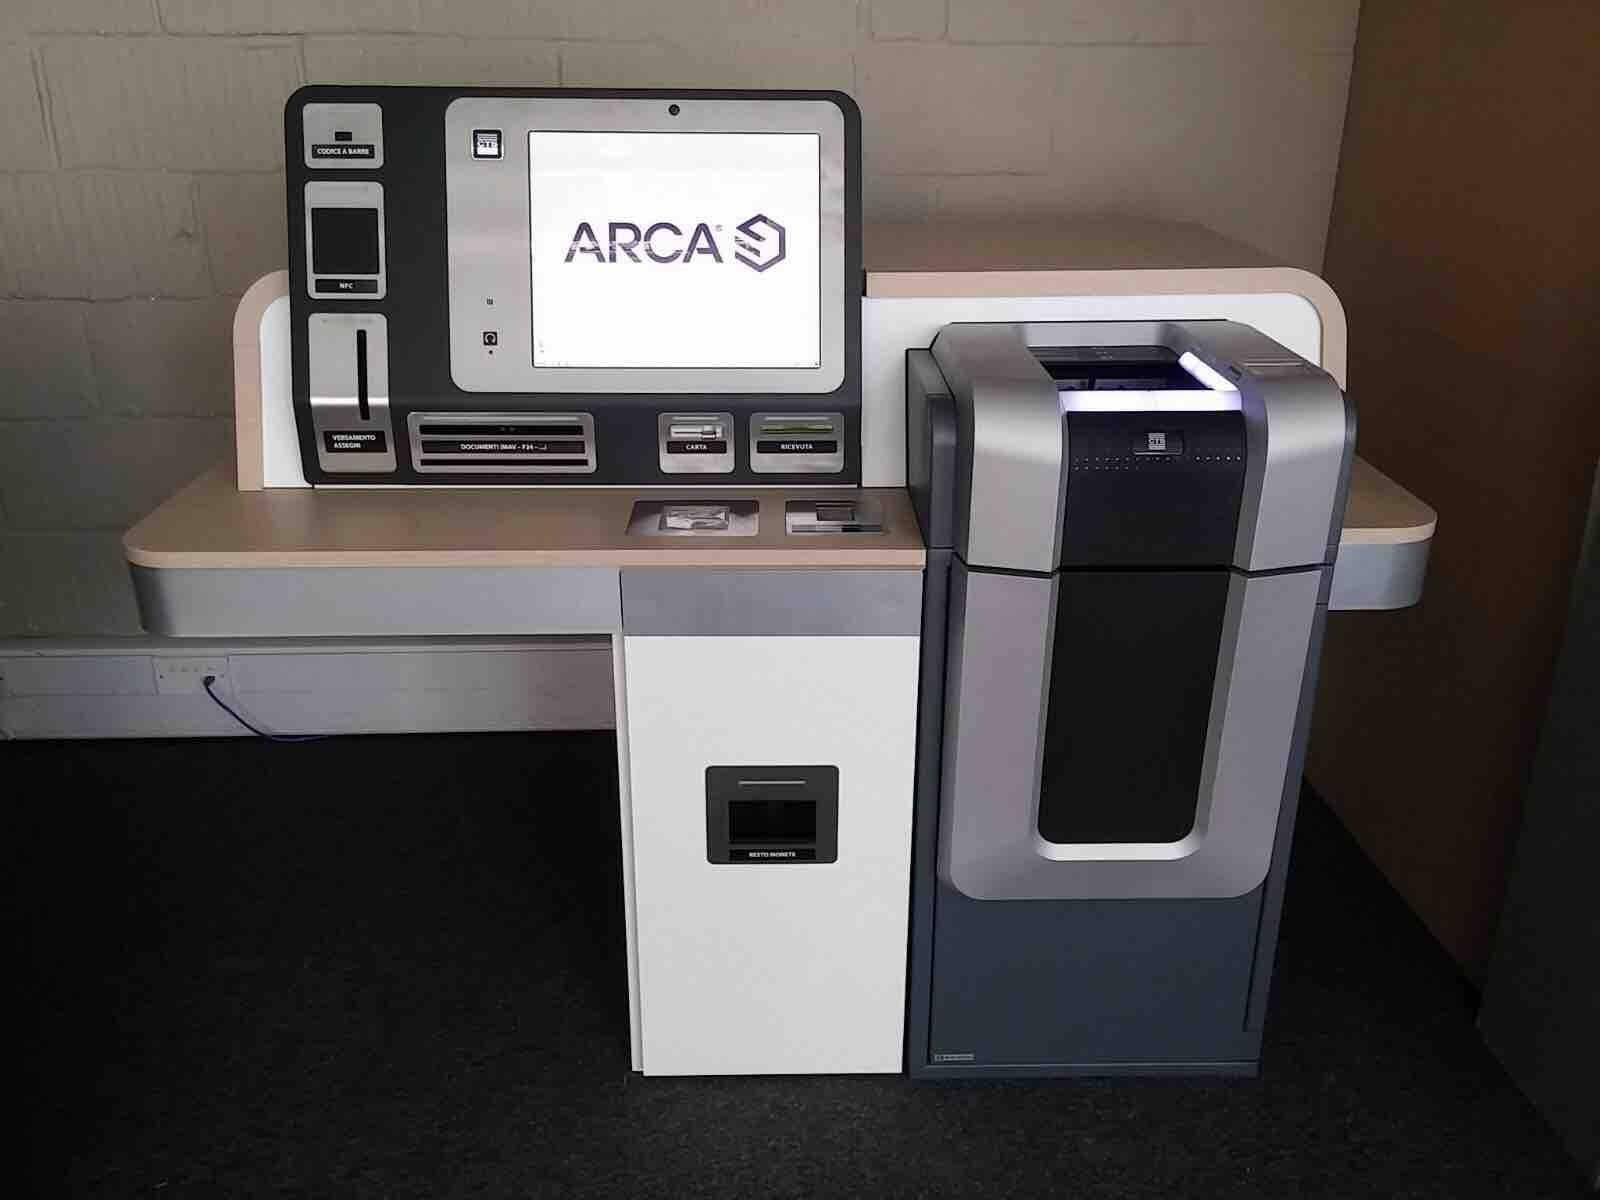 Cash dispenser and recycler